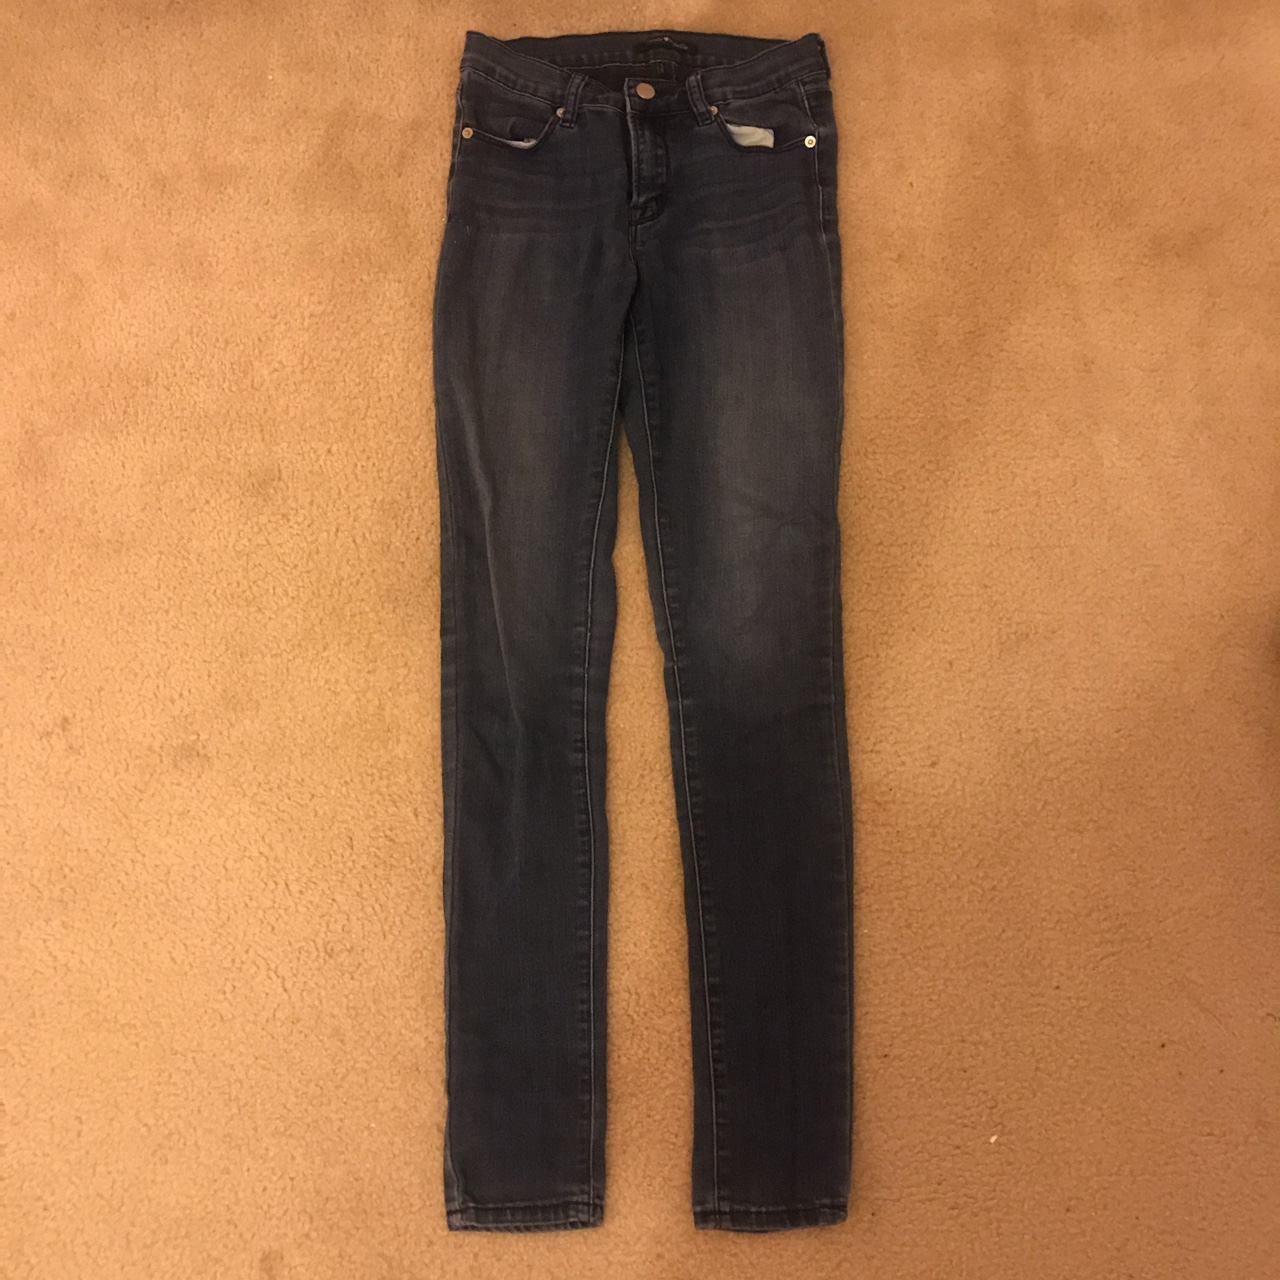 Product Image 1 - brandy melville jeans (feel like